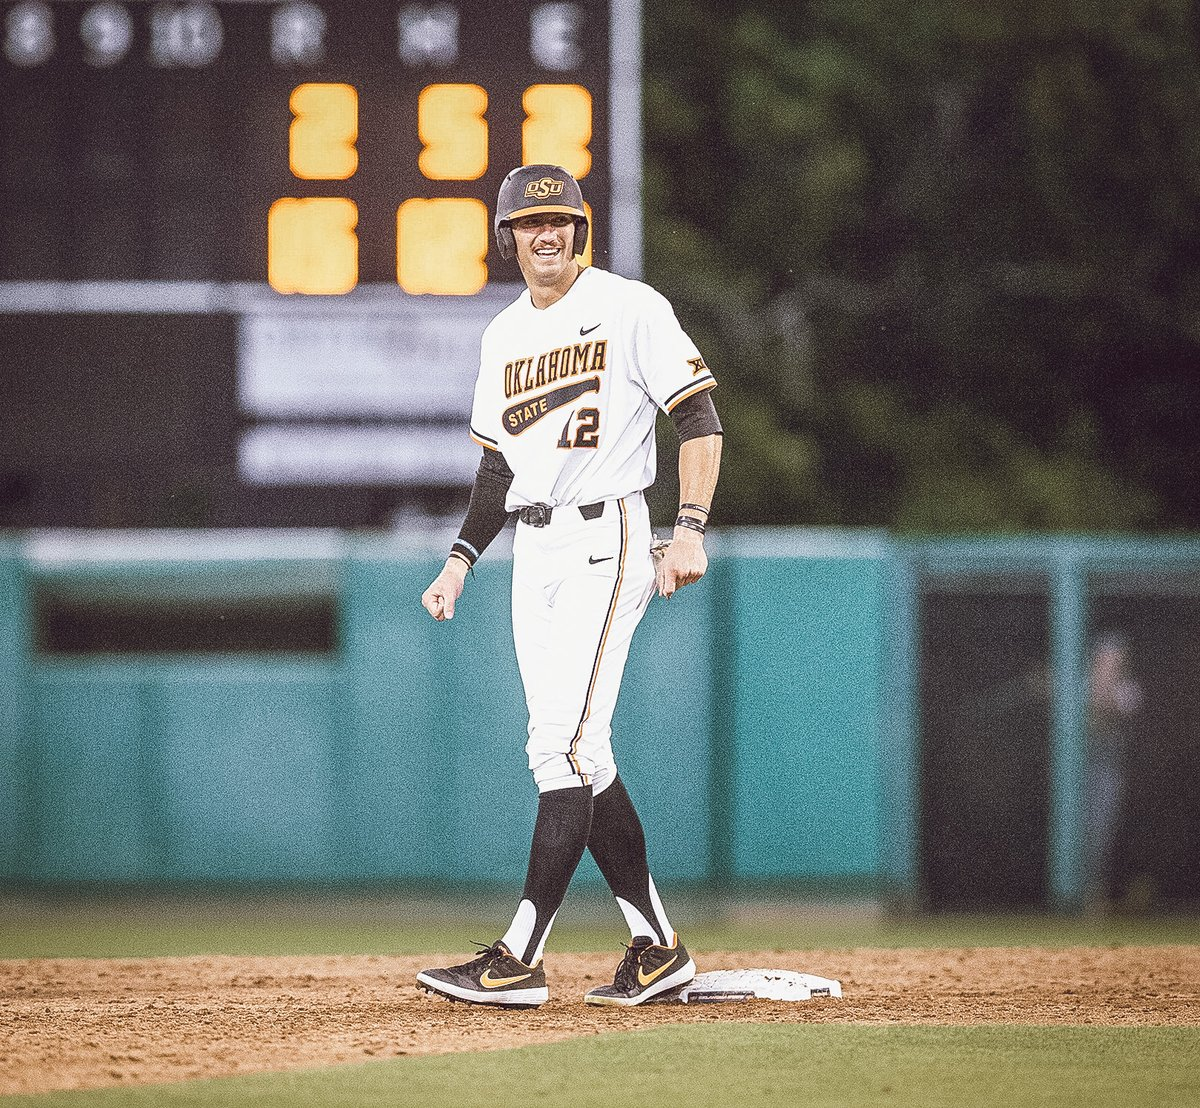 DYK: Cowboy Baseball's  All-Big 12 selections are the most of any program in the conference's history #GoPokes #okstate<br>http://pic.twitter.com/c8FBF6s85a